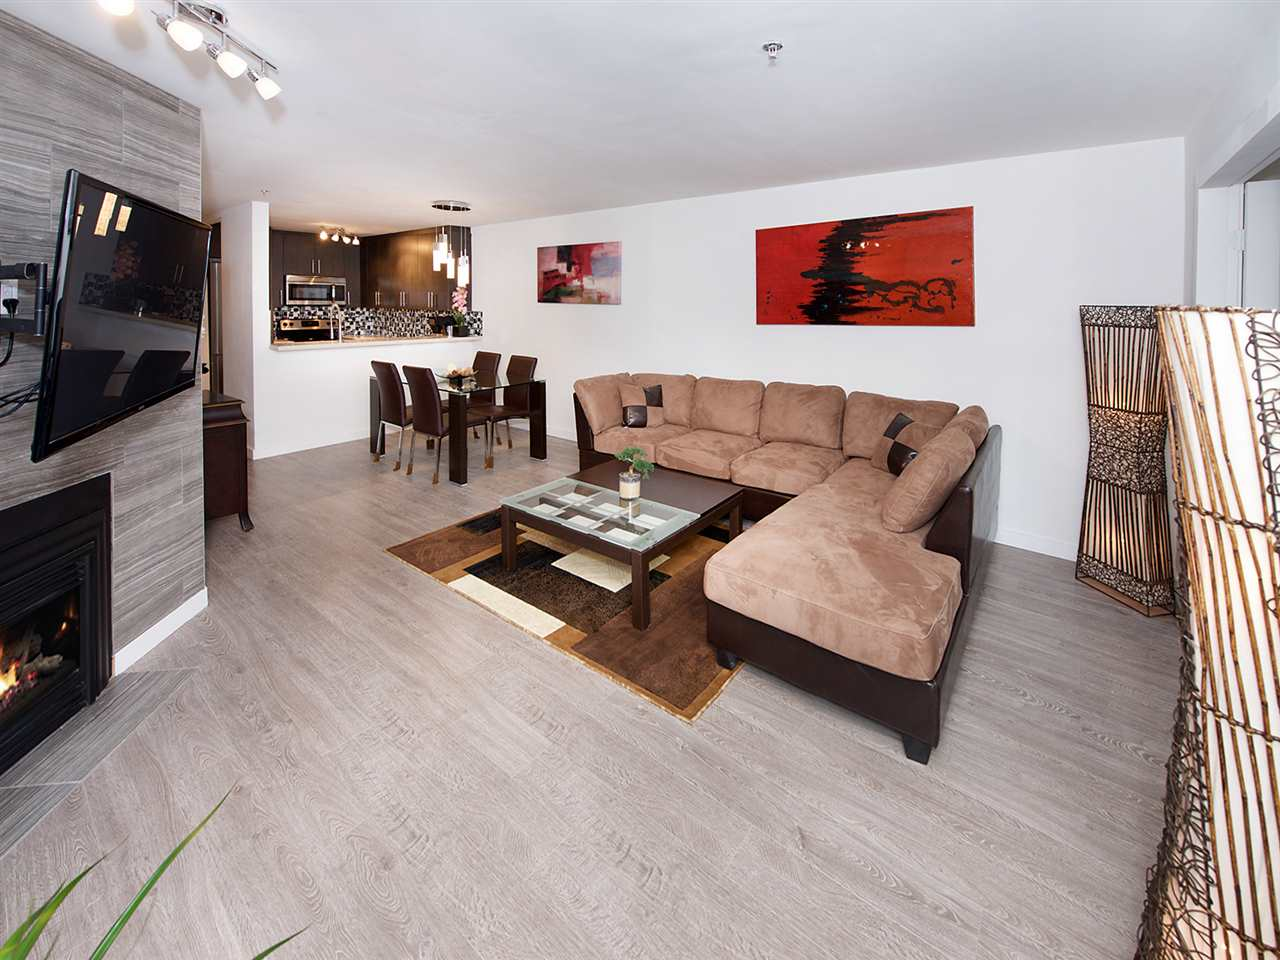 Photo 4: 207 1465 COMOX STREET in Vancouver: West End VW Condo for sale (Vancouver West)  : MLS(r) # R2024122